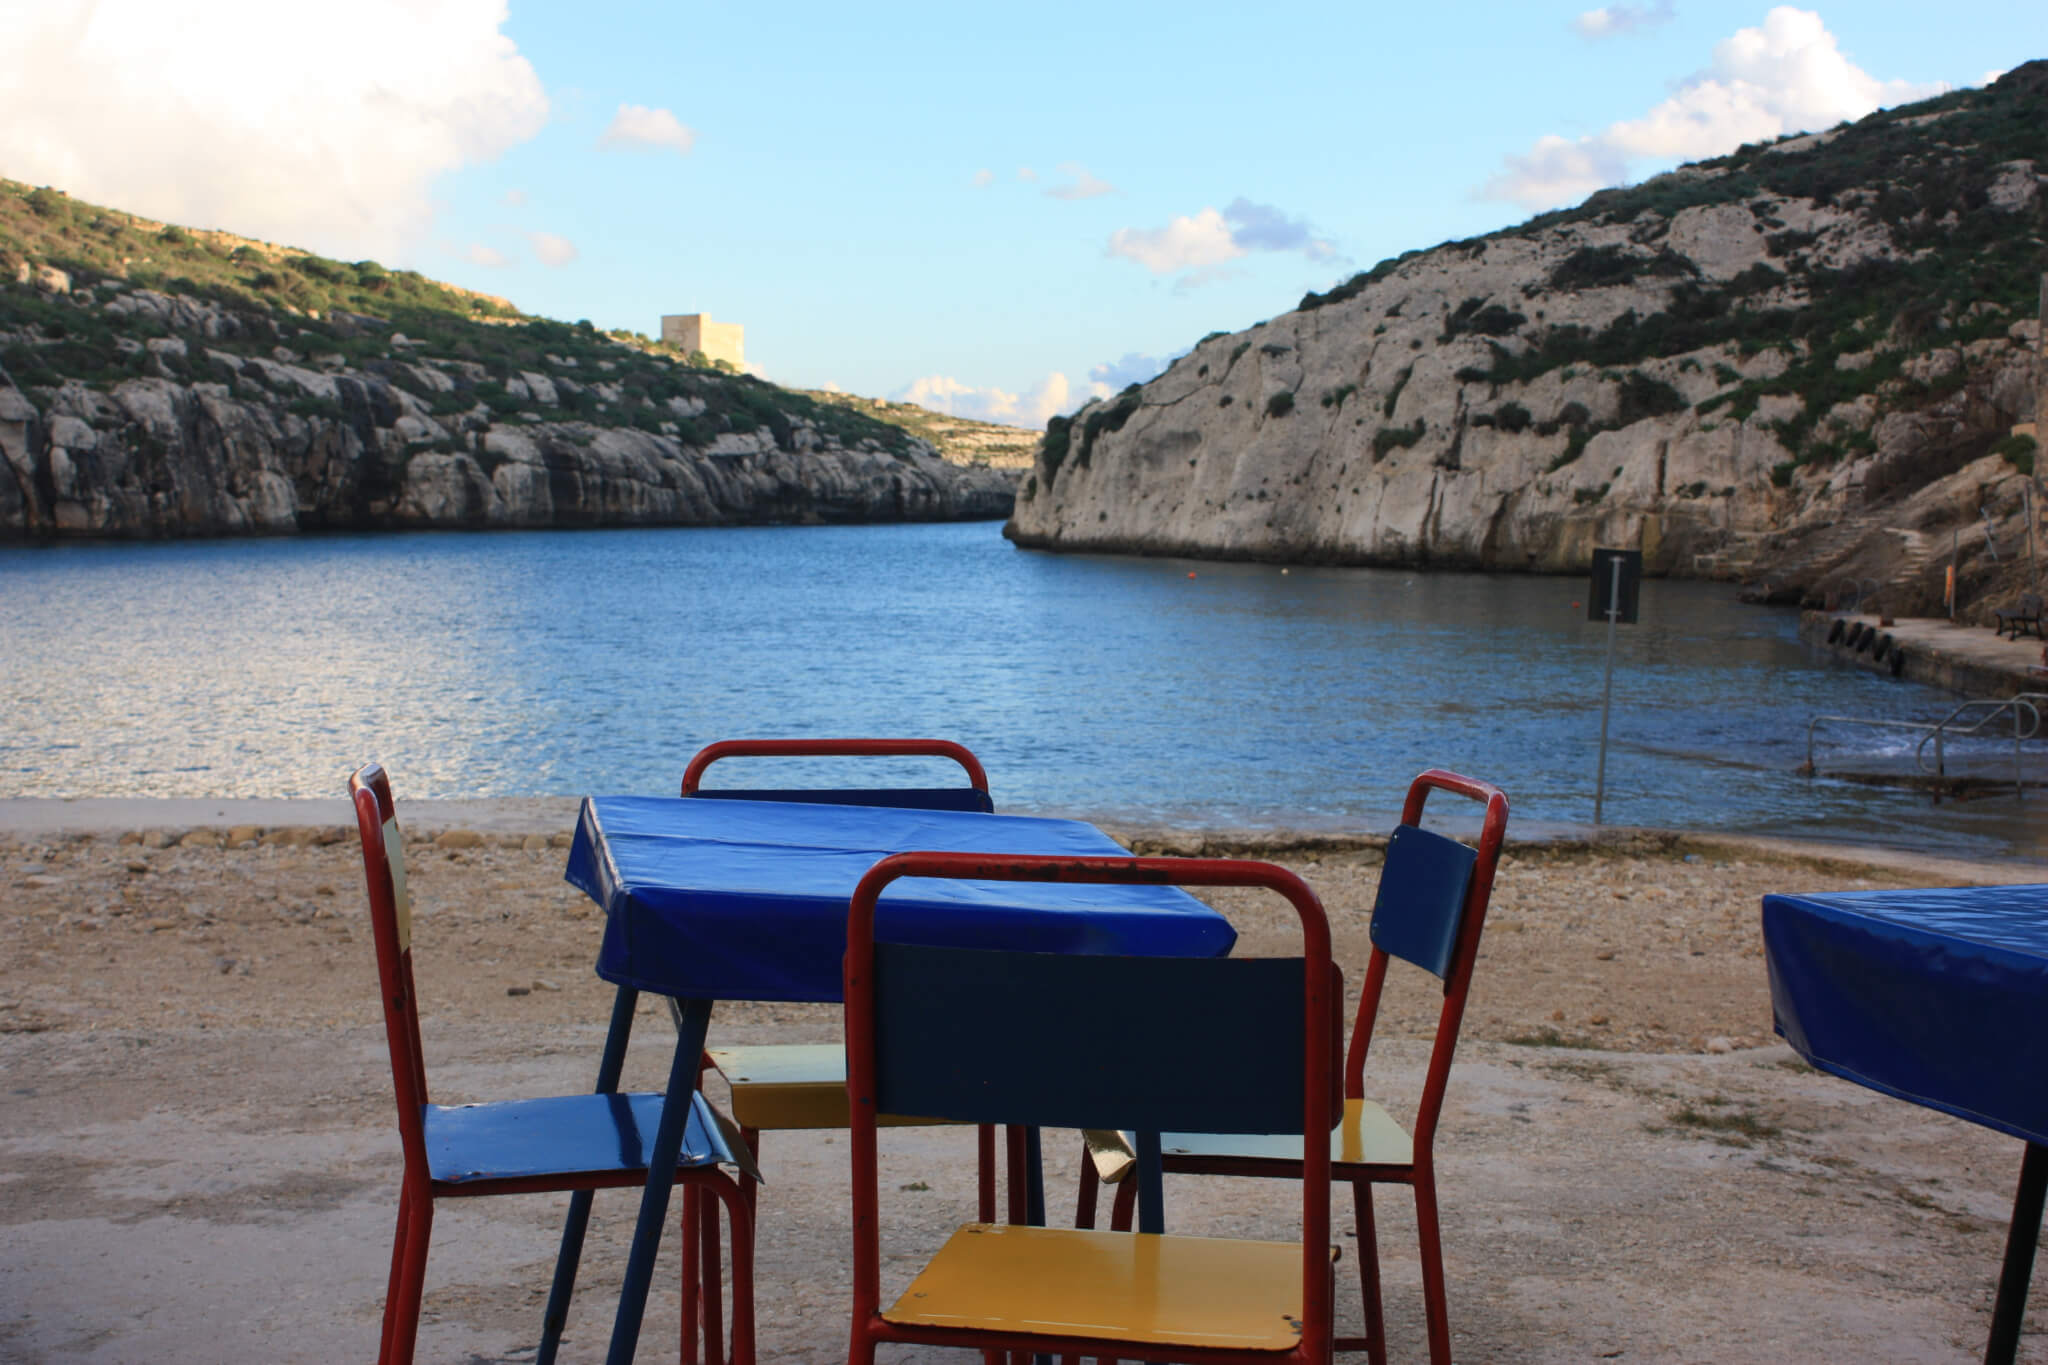 Mgarr ix-xini chairs